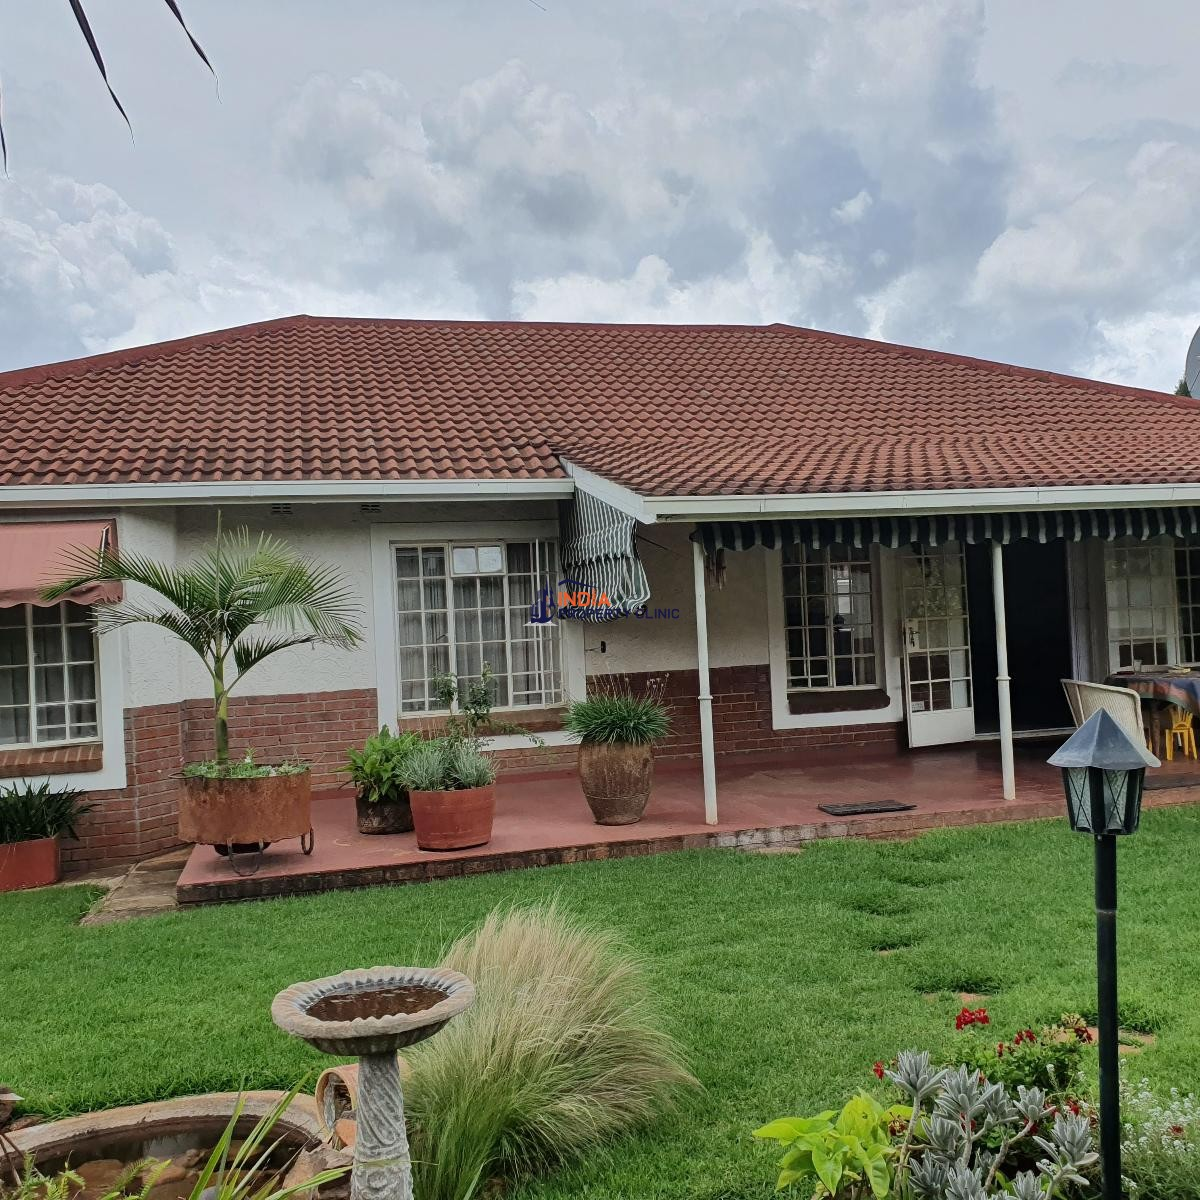 3 Bedroom House for Sale in Avondale